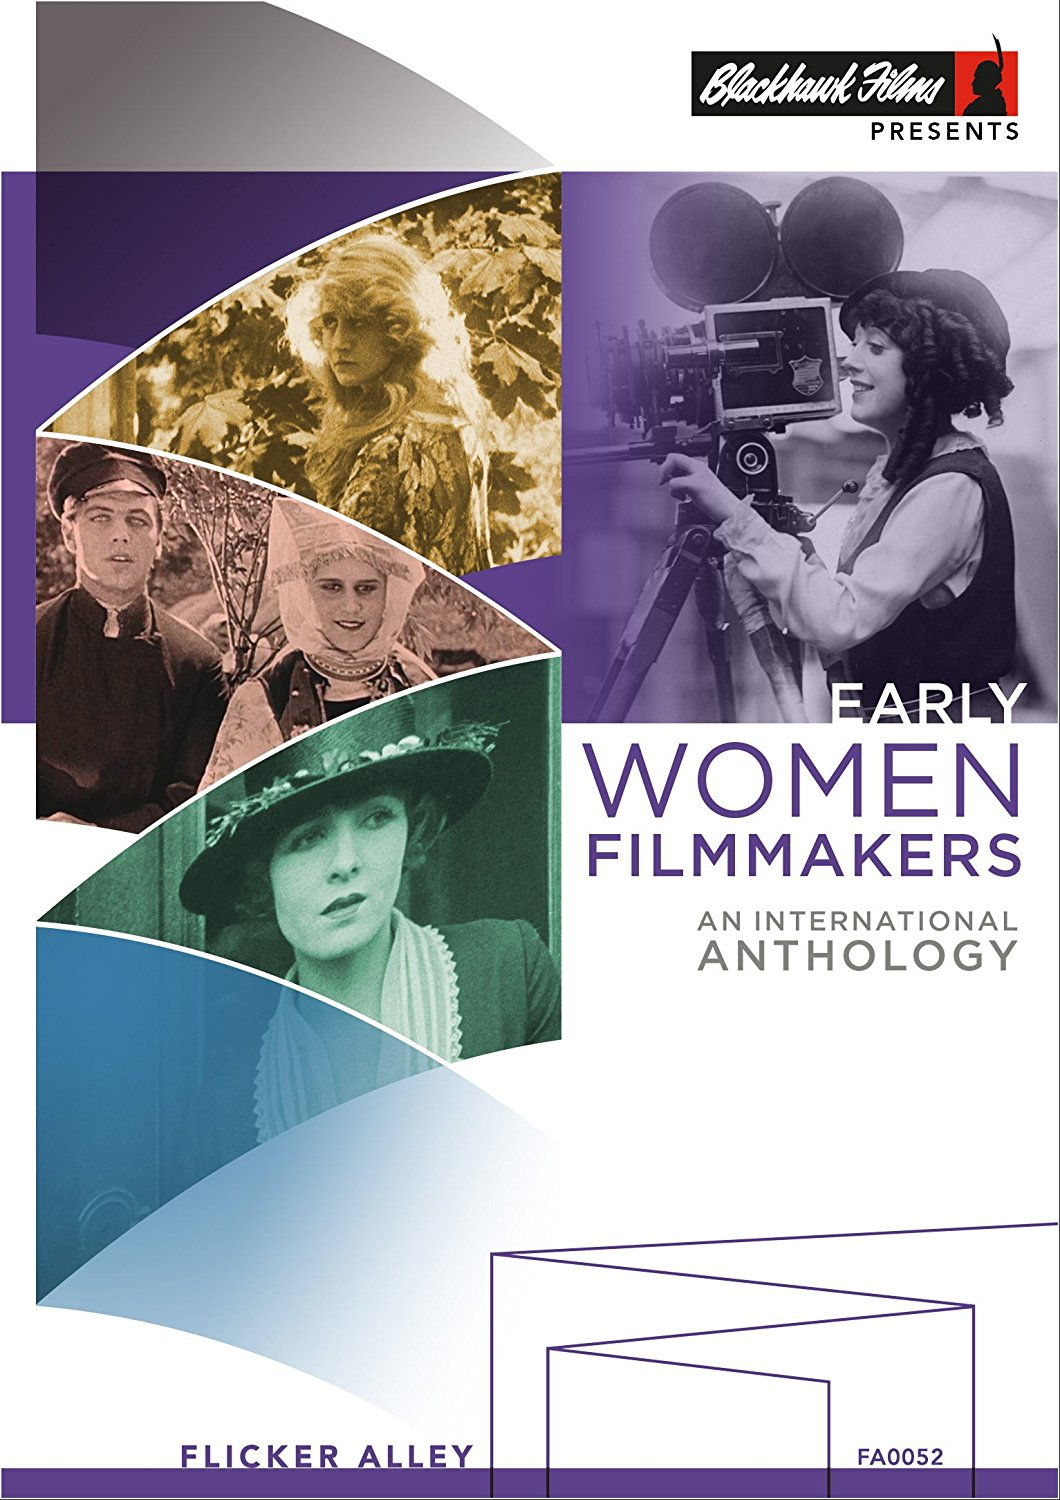 EARLY WOMEN FILMMAKERS SLEEVE.jpg